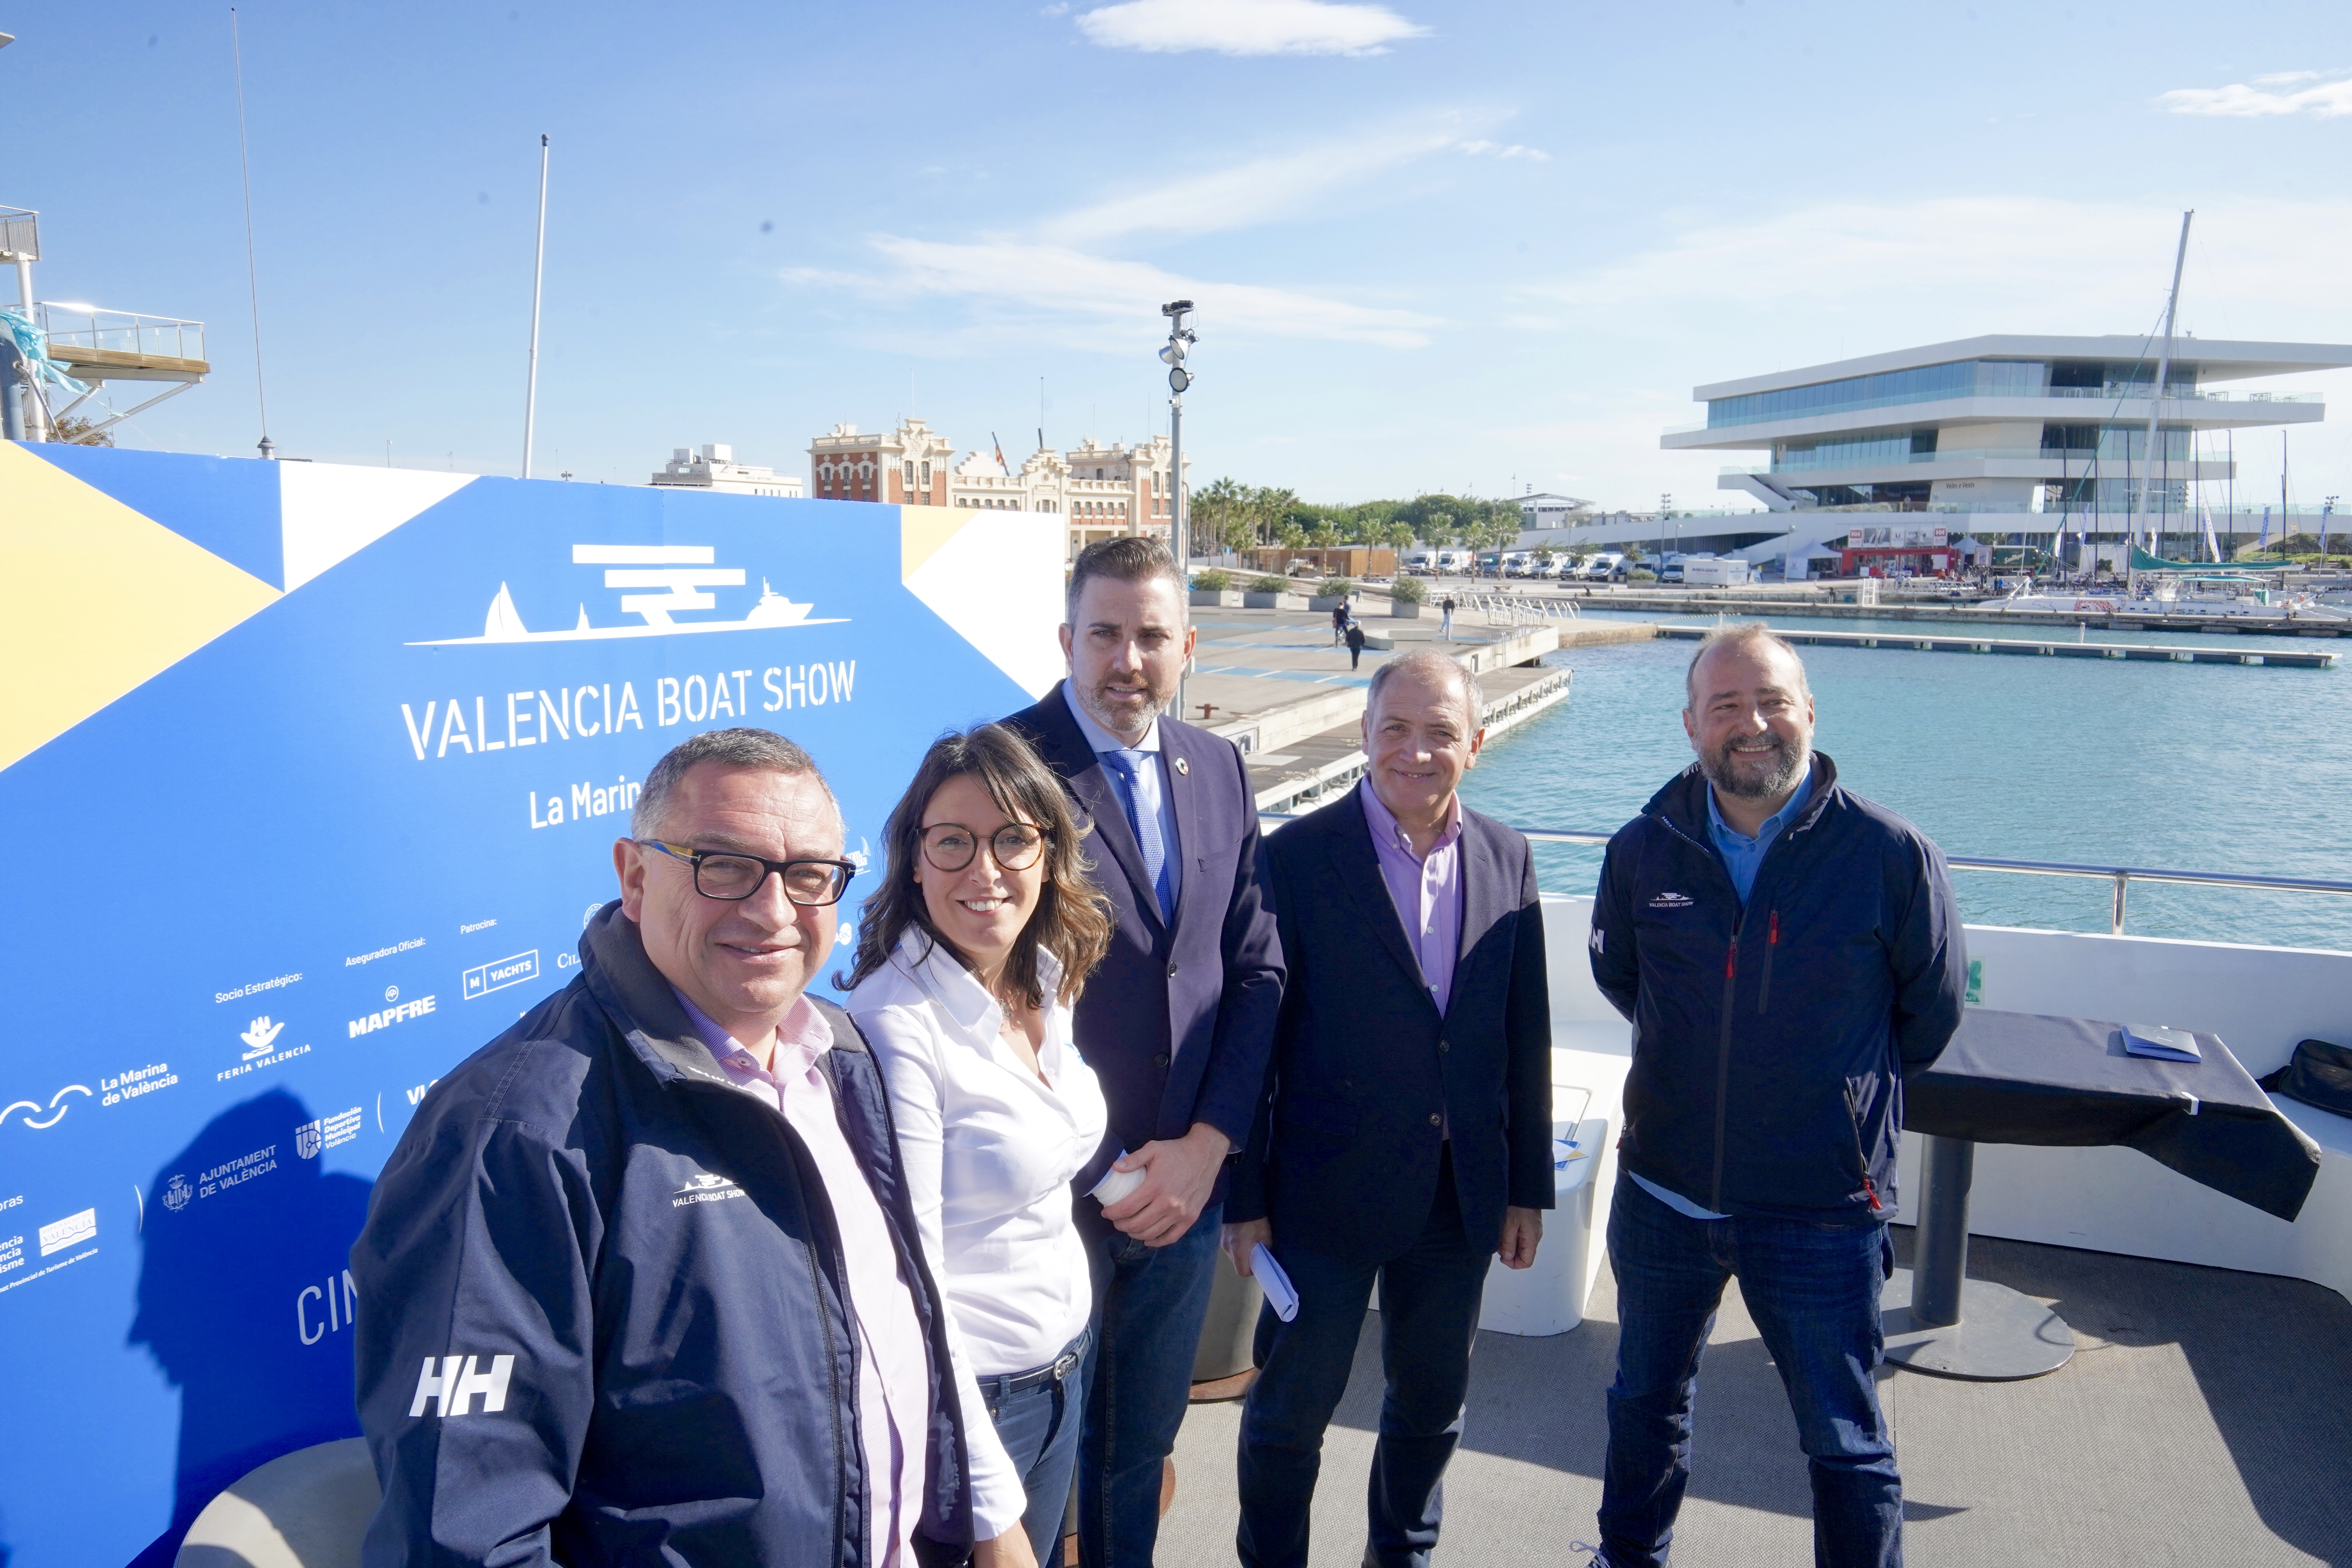 Valencia Boat Show: full house of exhibitors for 2019